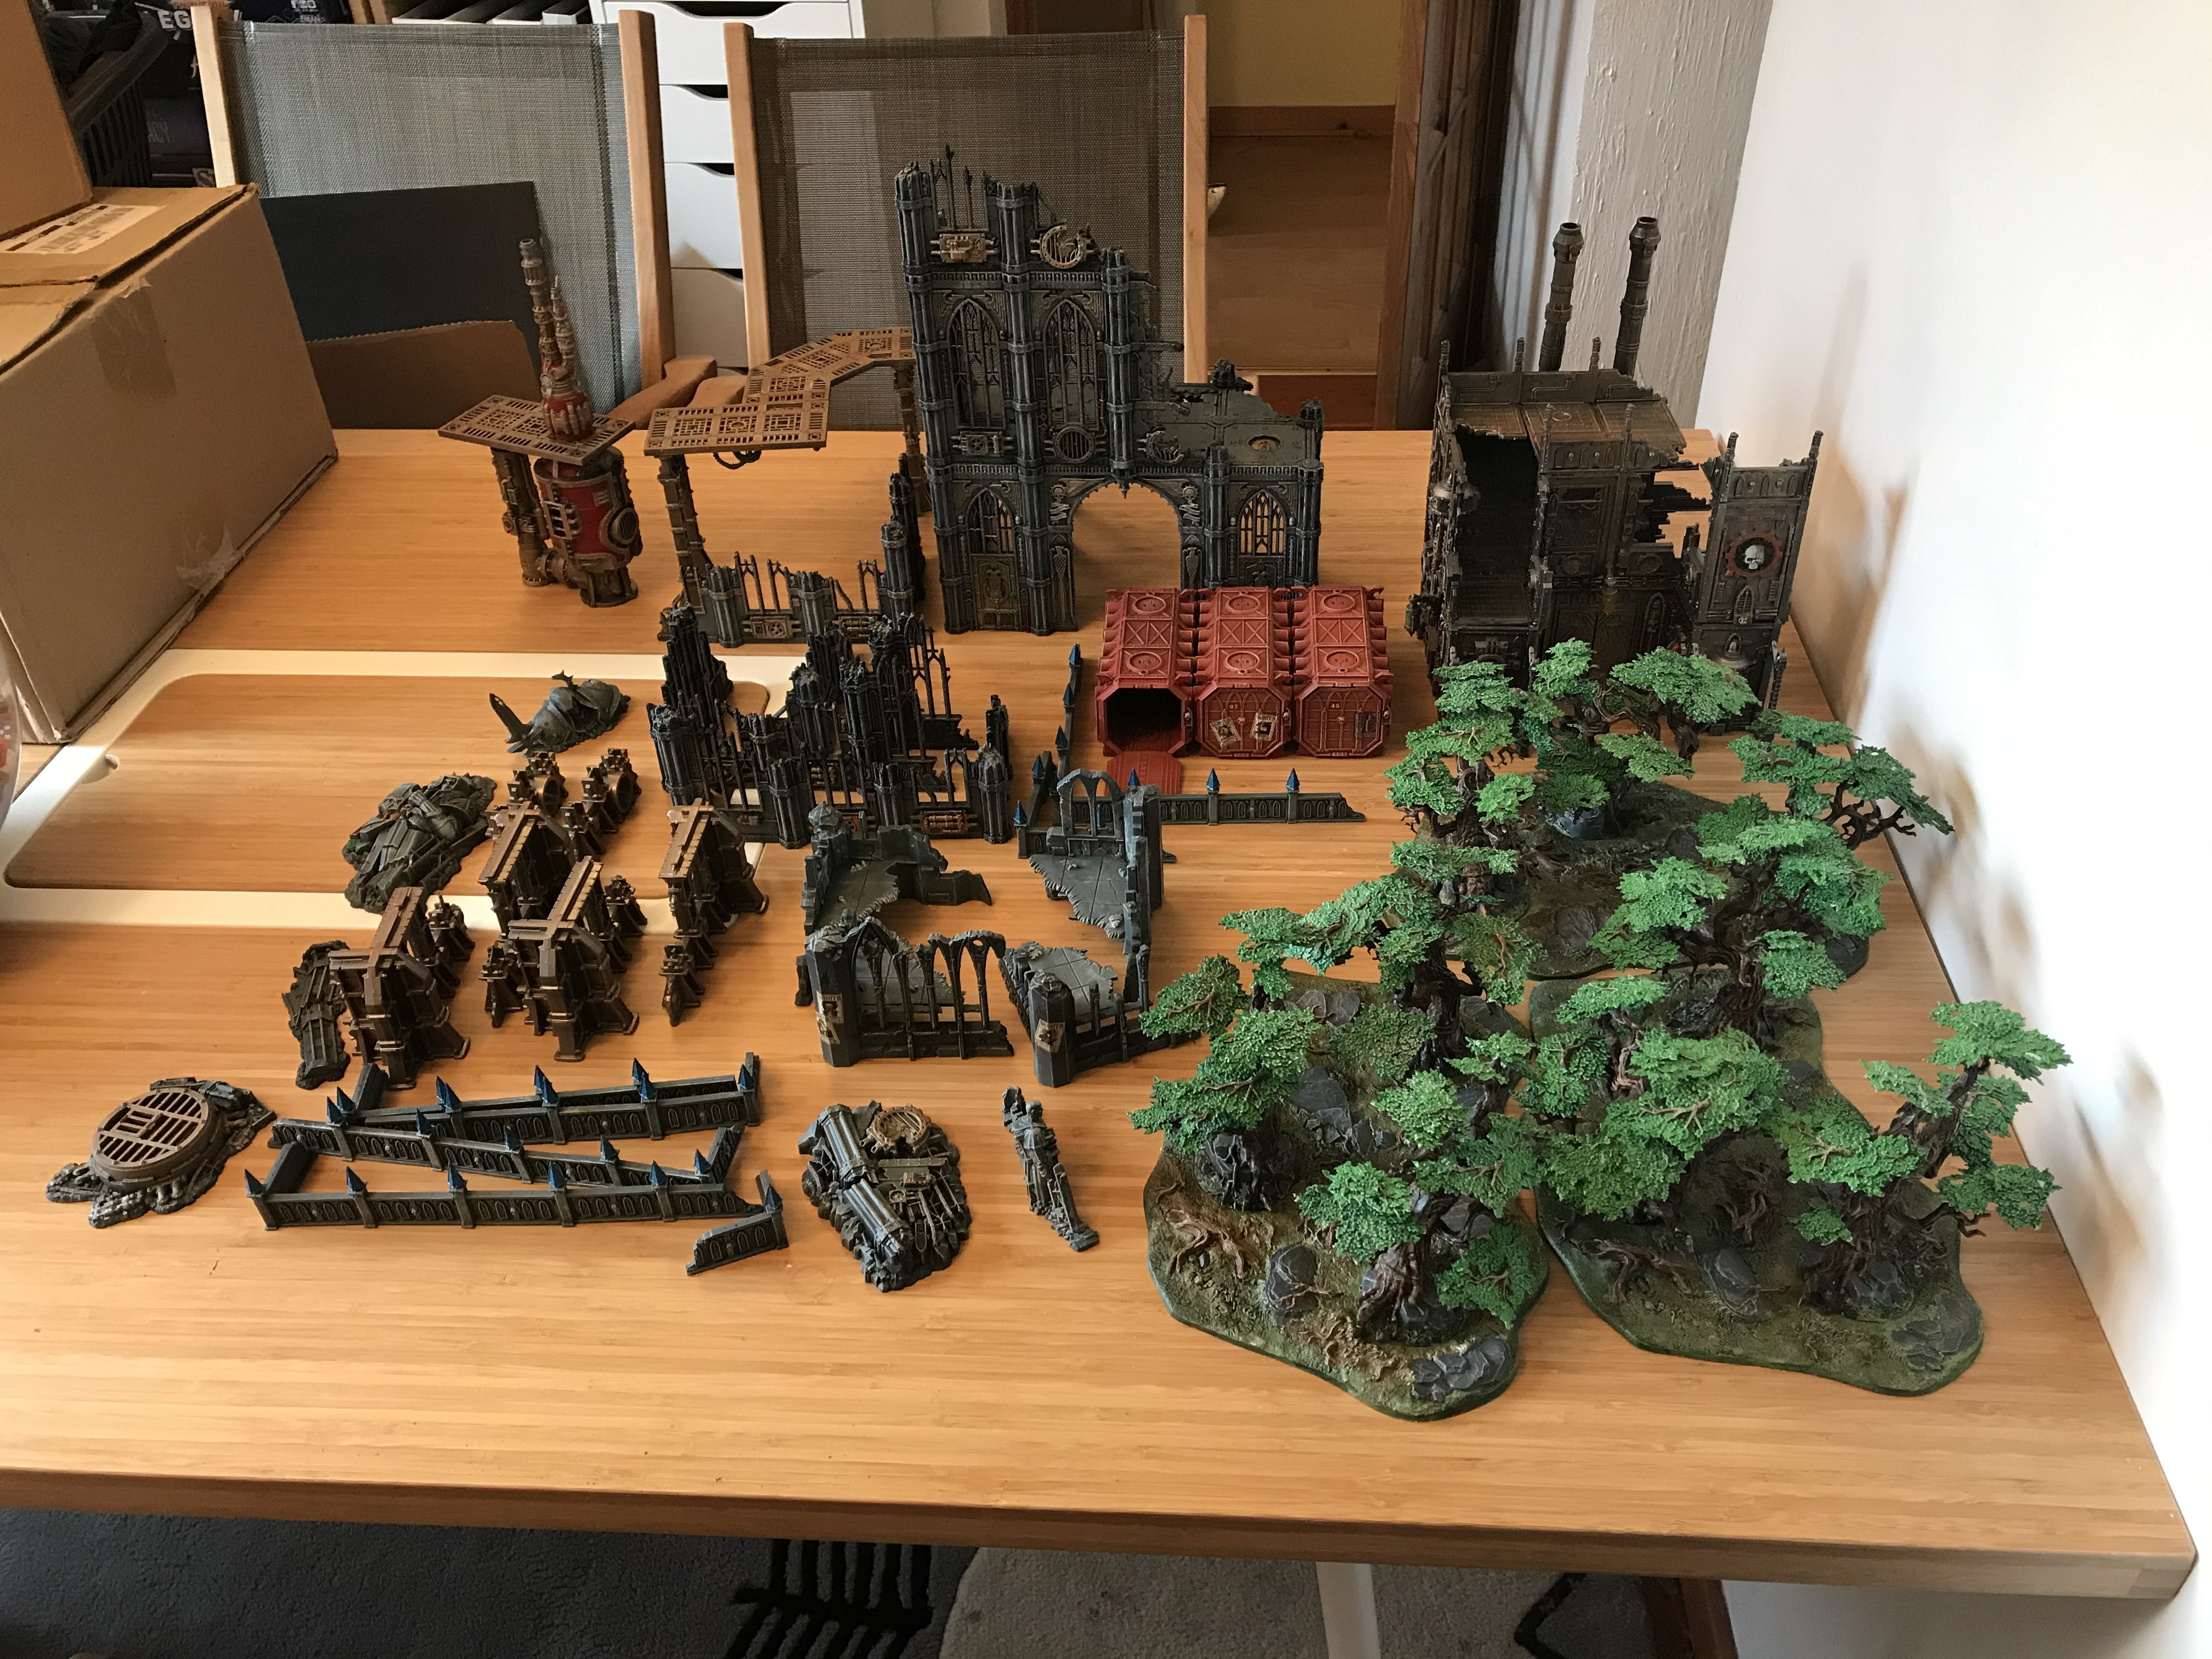 A collection of model scenery on a table, including forests, low walls, gothic ruins, and containers.